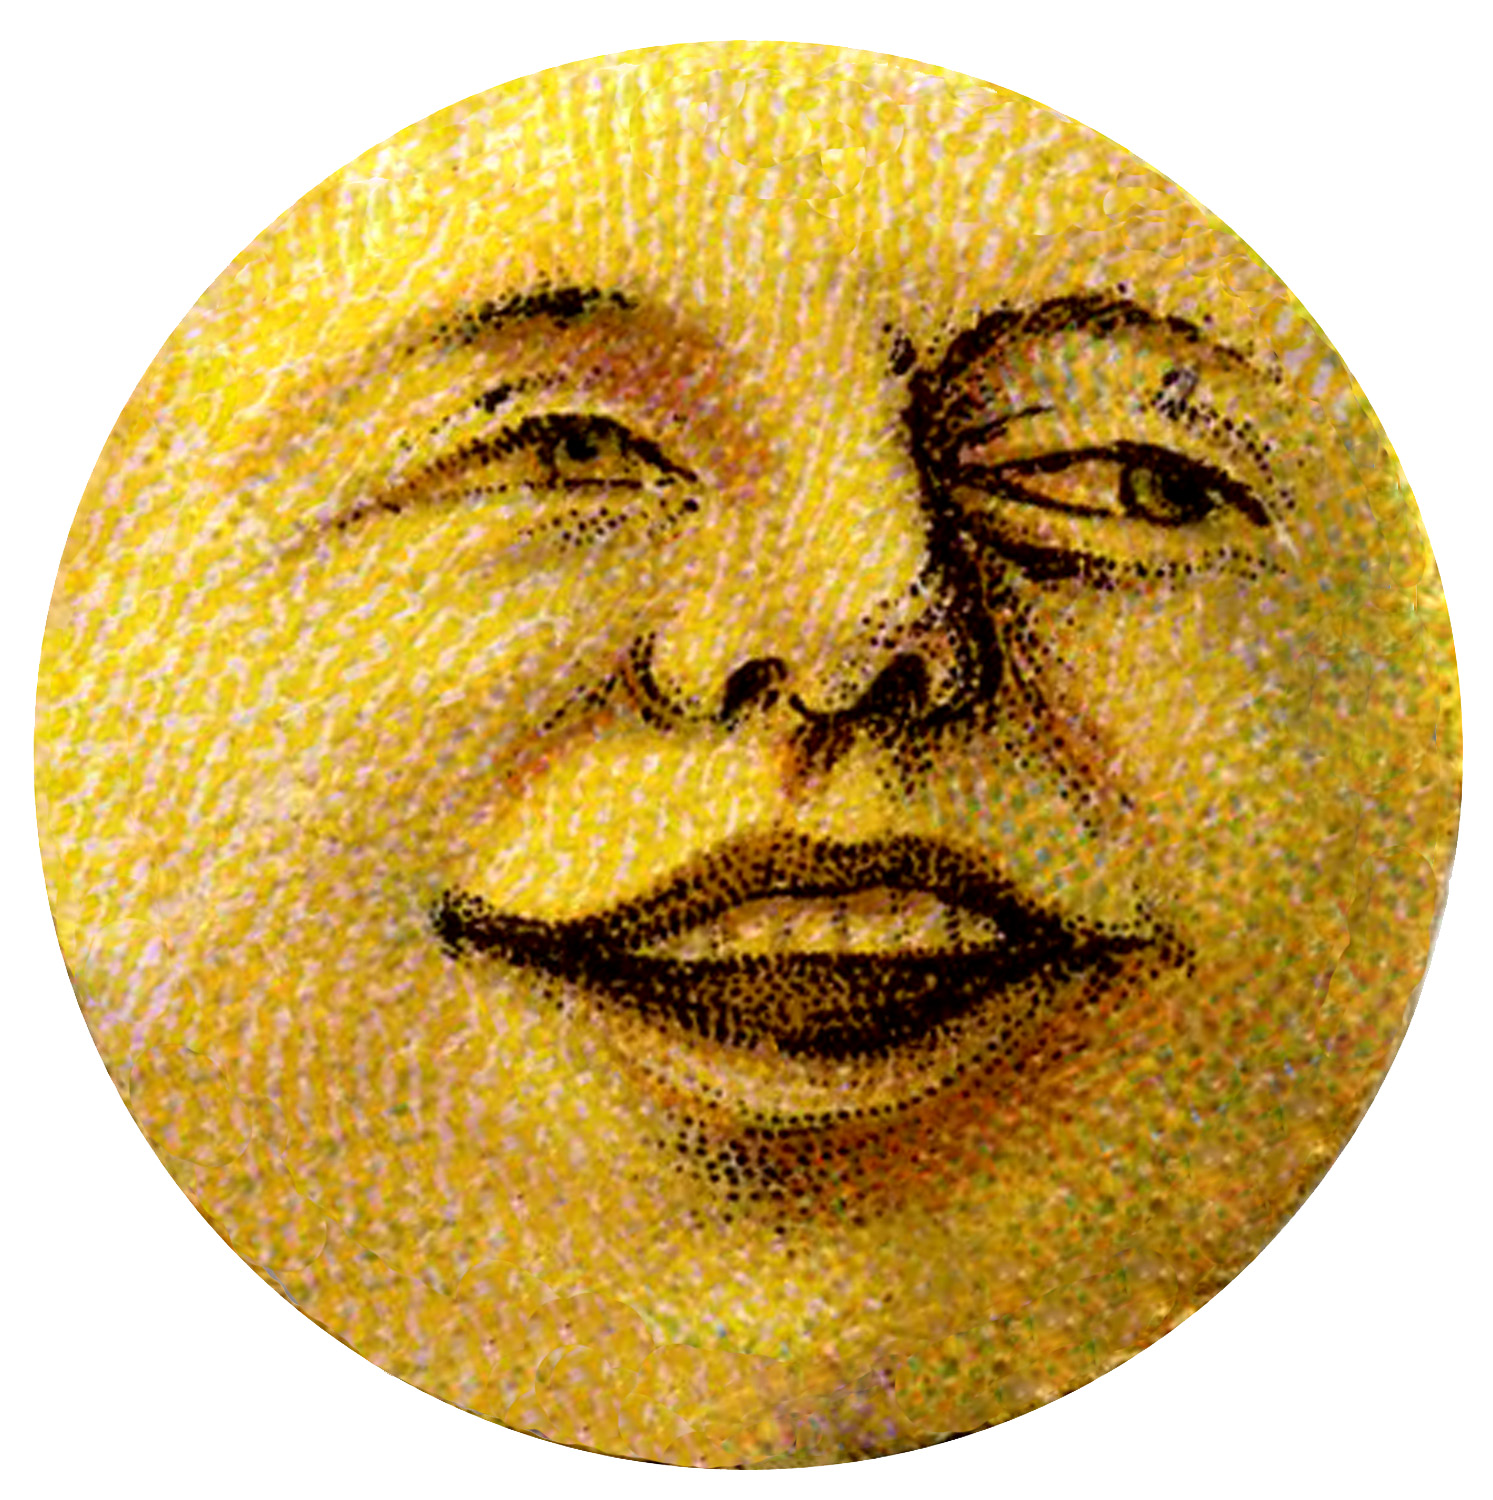 man in the moon clipart - photo #7